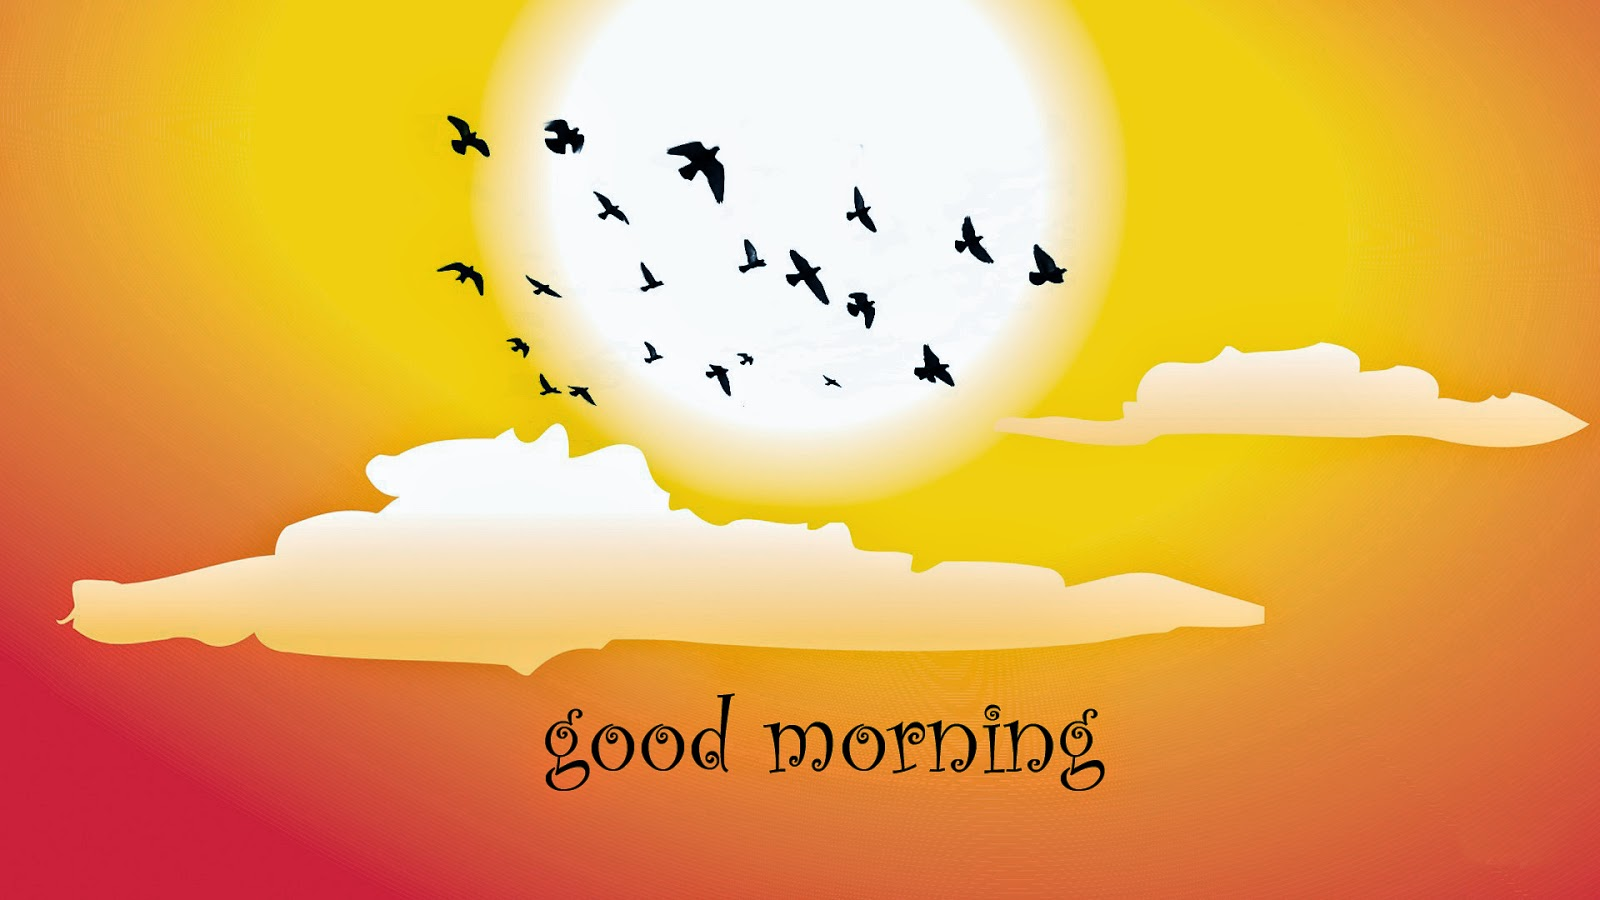 Good Morning Love Wallpaper For Her : Amazing hd wallpapers: Download High Resolution Wallpapers of Good Morning